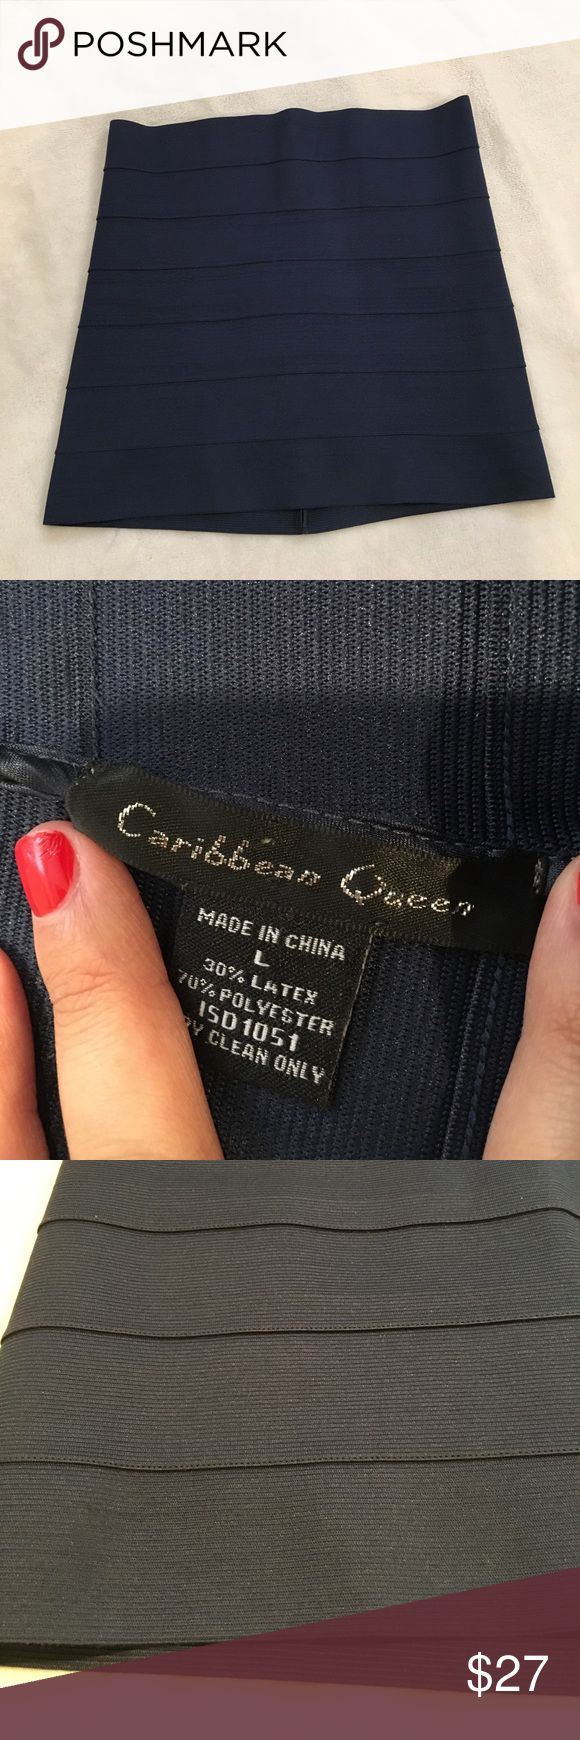 Caribbean Queen Navy bandage skirt very tight fitting navy bandage/pencil skirt! in very good condition only worn a few times! has striped detailing down the skirt. very fun and flirty and perfect for any occasion! has a label with a name scribbled over because it had my name previously in it ☺️ caribbean queen  Skirts Pencil